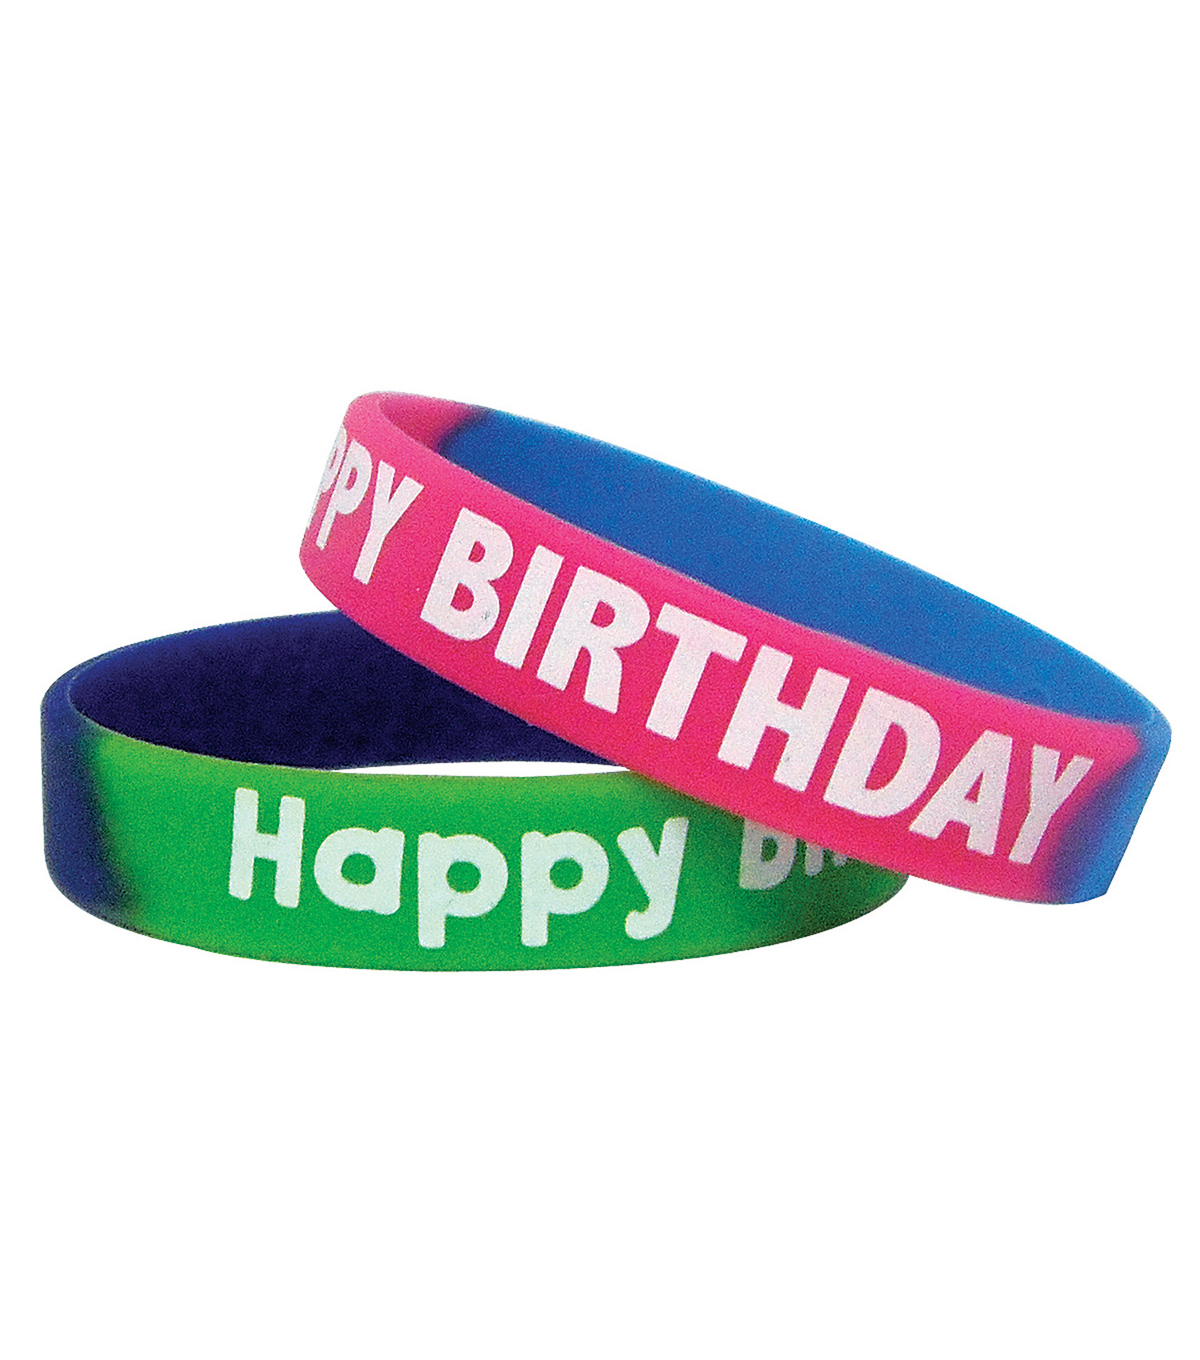 Fancy Happy Birthday Wristbands, 10 Per Pack, 6 Packs